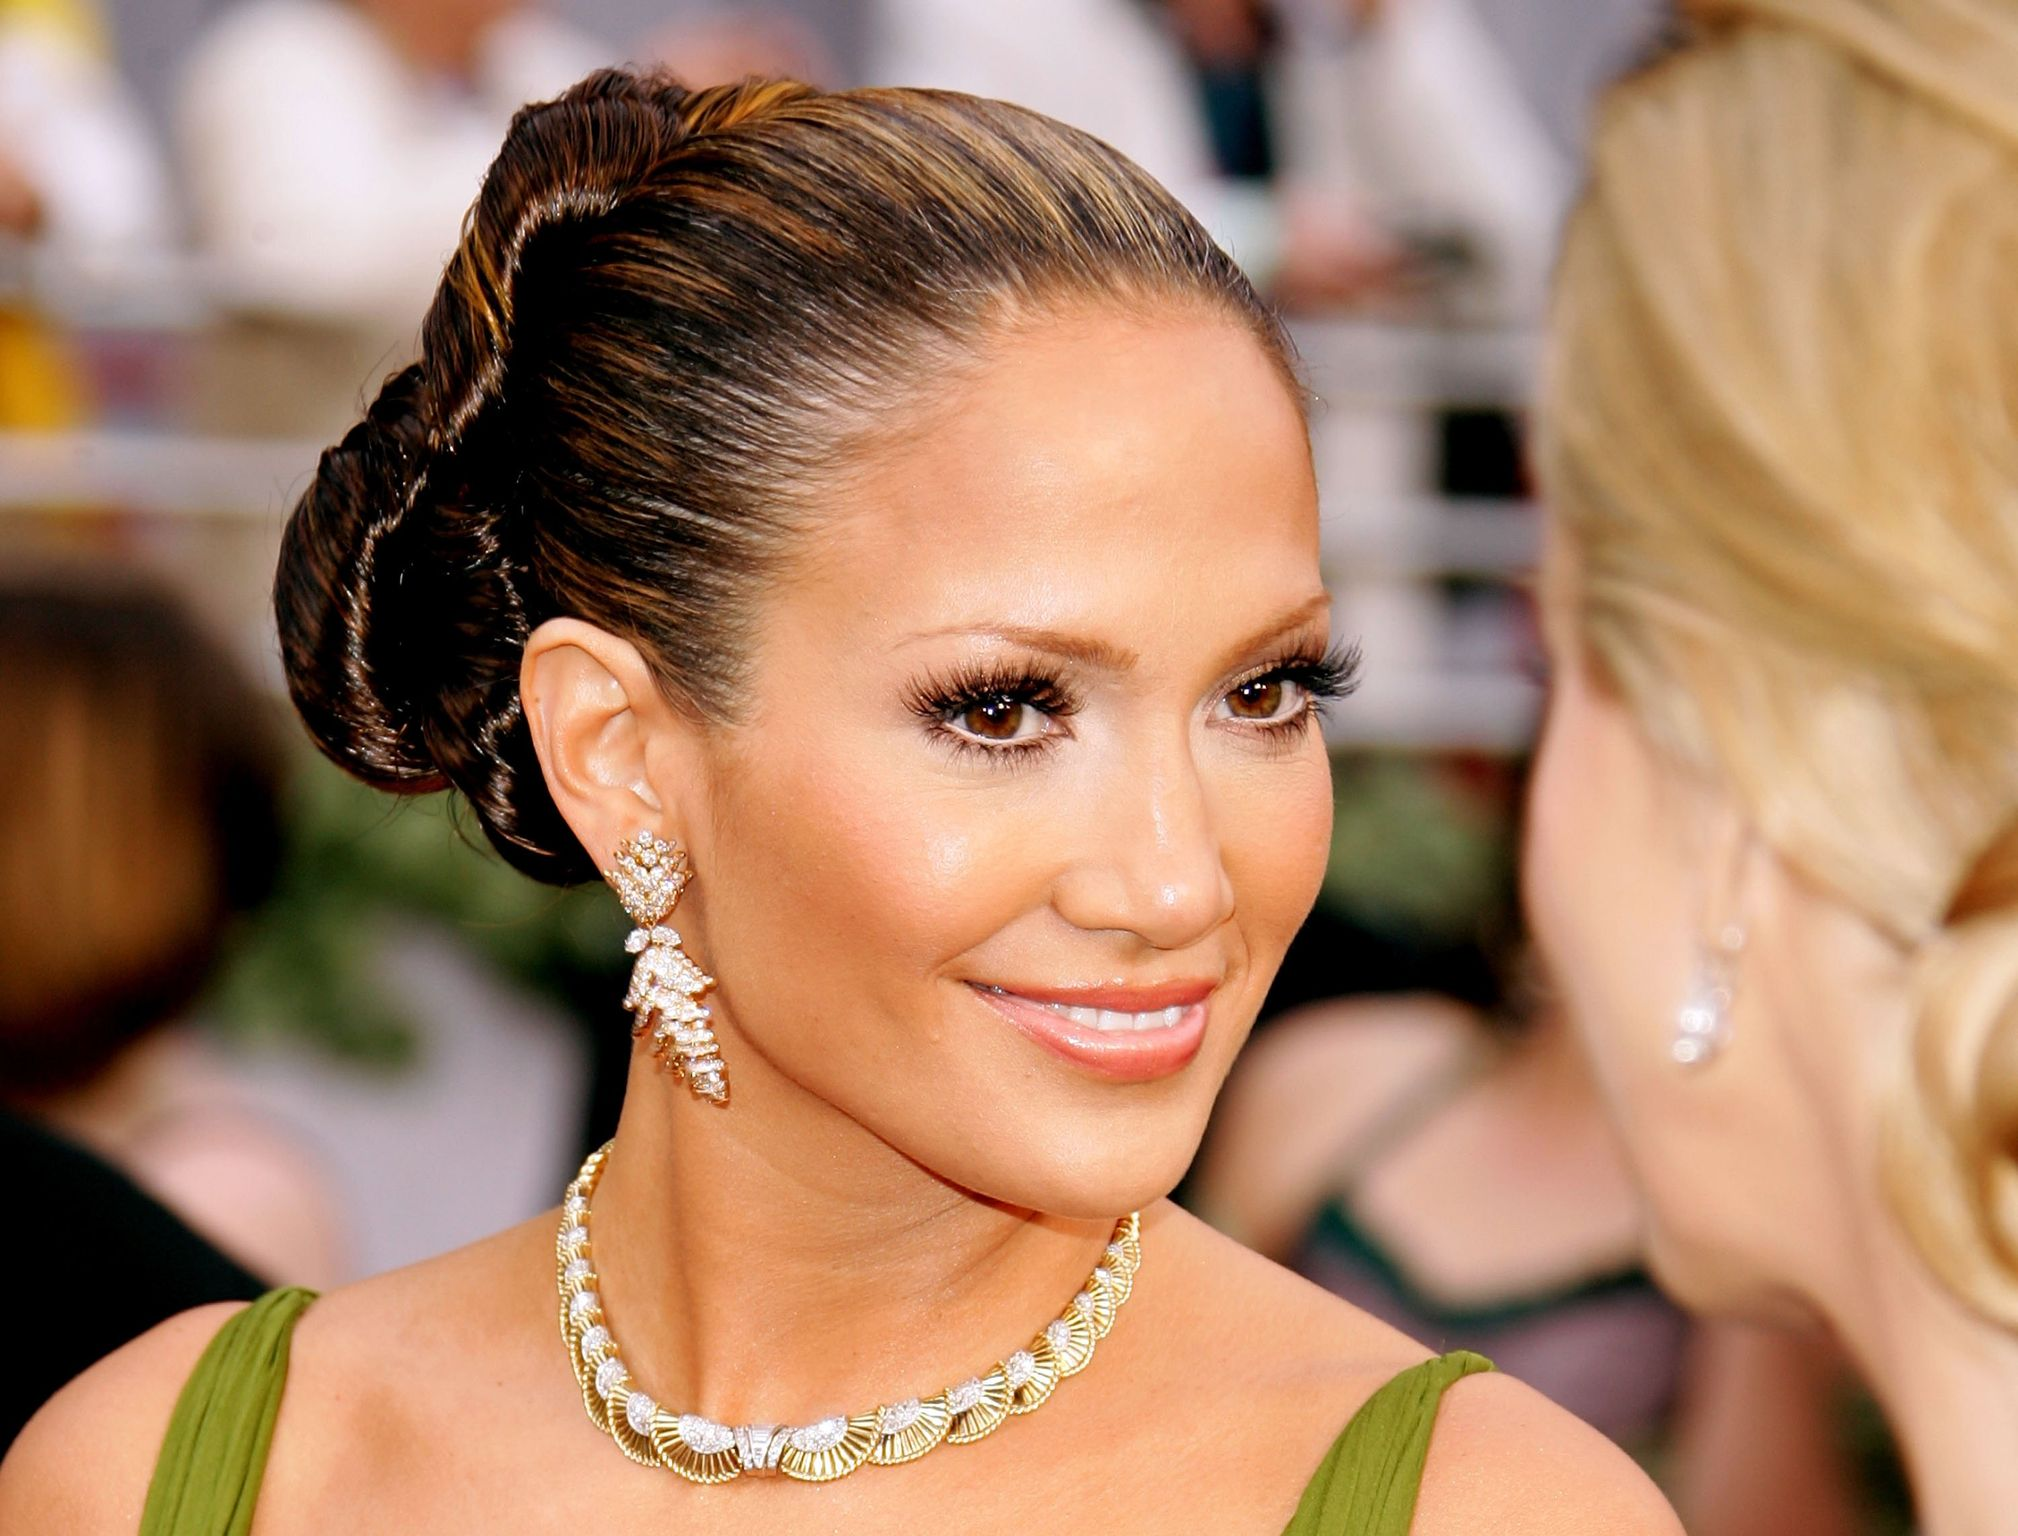 Jennifer Lopez arrives to the 78th Annual Academy Awards at the Kodak Theatre on March 5, 2006 in Hollywood, California. | Photo: Getty Images